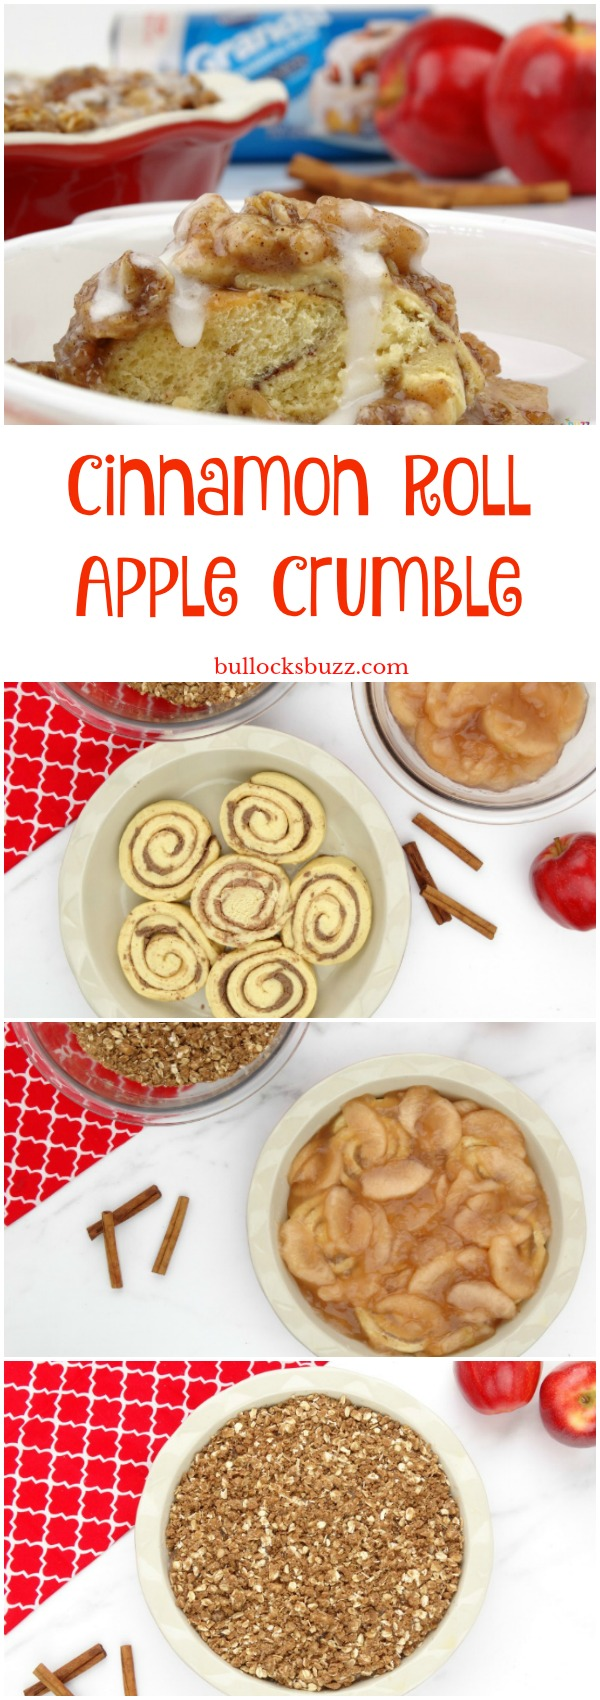 Warm gooey cinnamon buns are covered in crisp apple pie filling, topped with a sweet cinnamon and brown sugar crumble, and then drizzled with a warm cream cheese icing in this delightful Cinnamon Roll Apple Crumble dessert recipe.